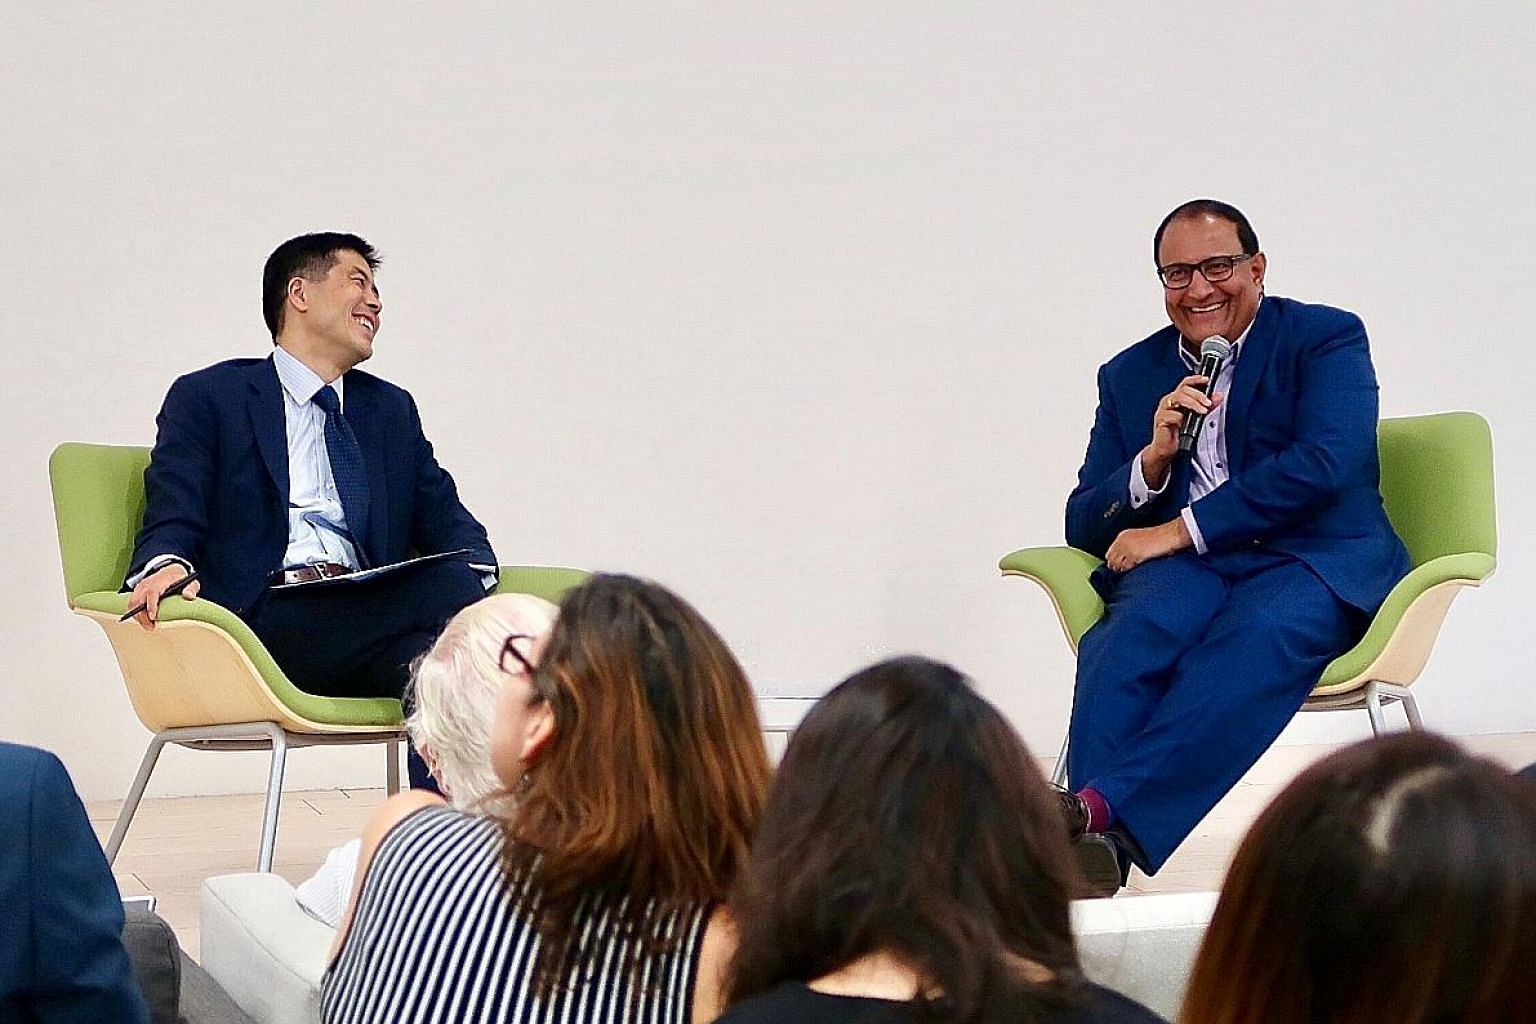 Minister for Communications and Information S. Iswaran at a dialogue at the Asia Society (Northern California Centre) on Thursday, where he said that there is a need for more international engagement on the norms that govern digital economy activity